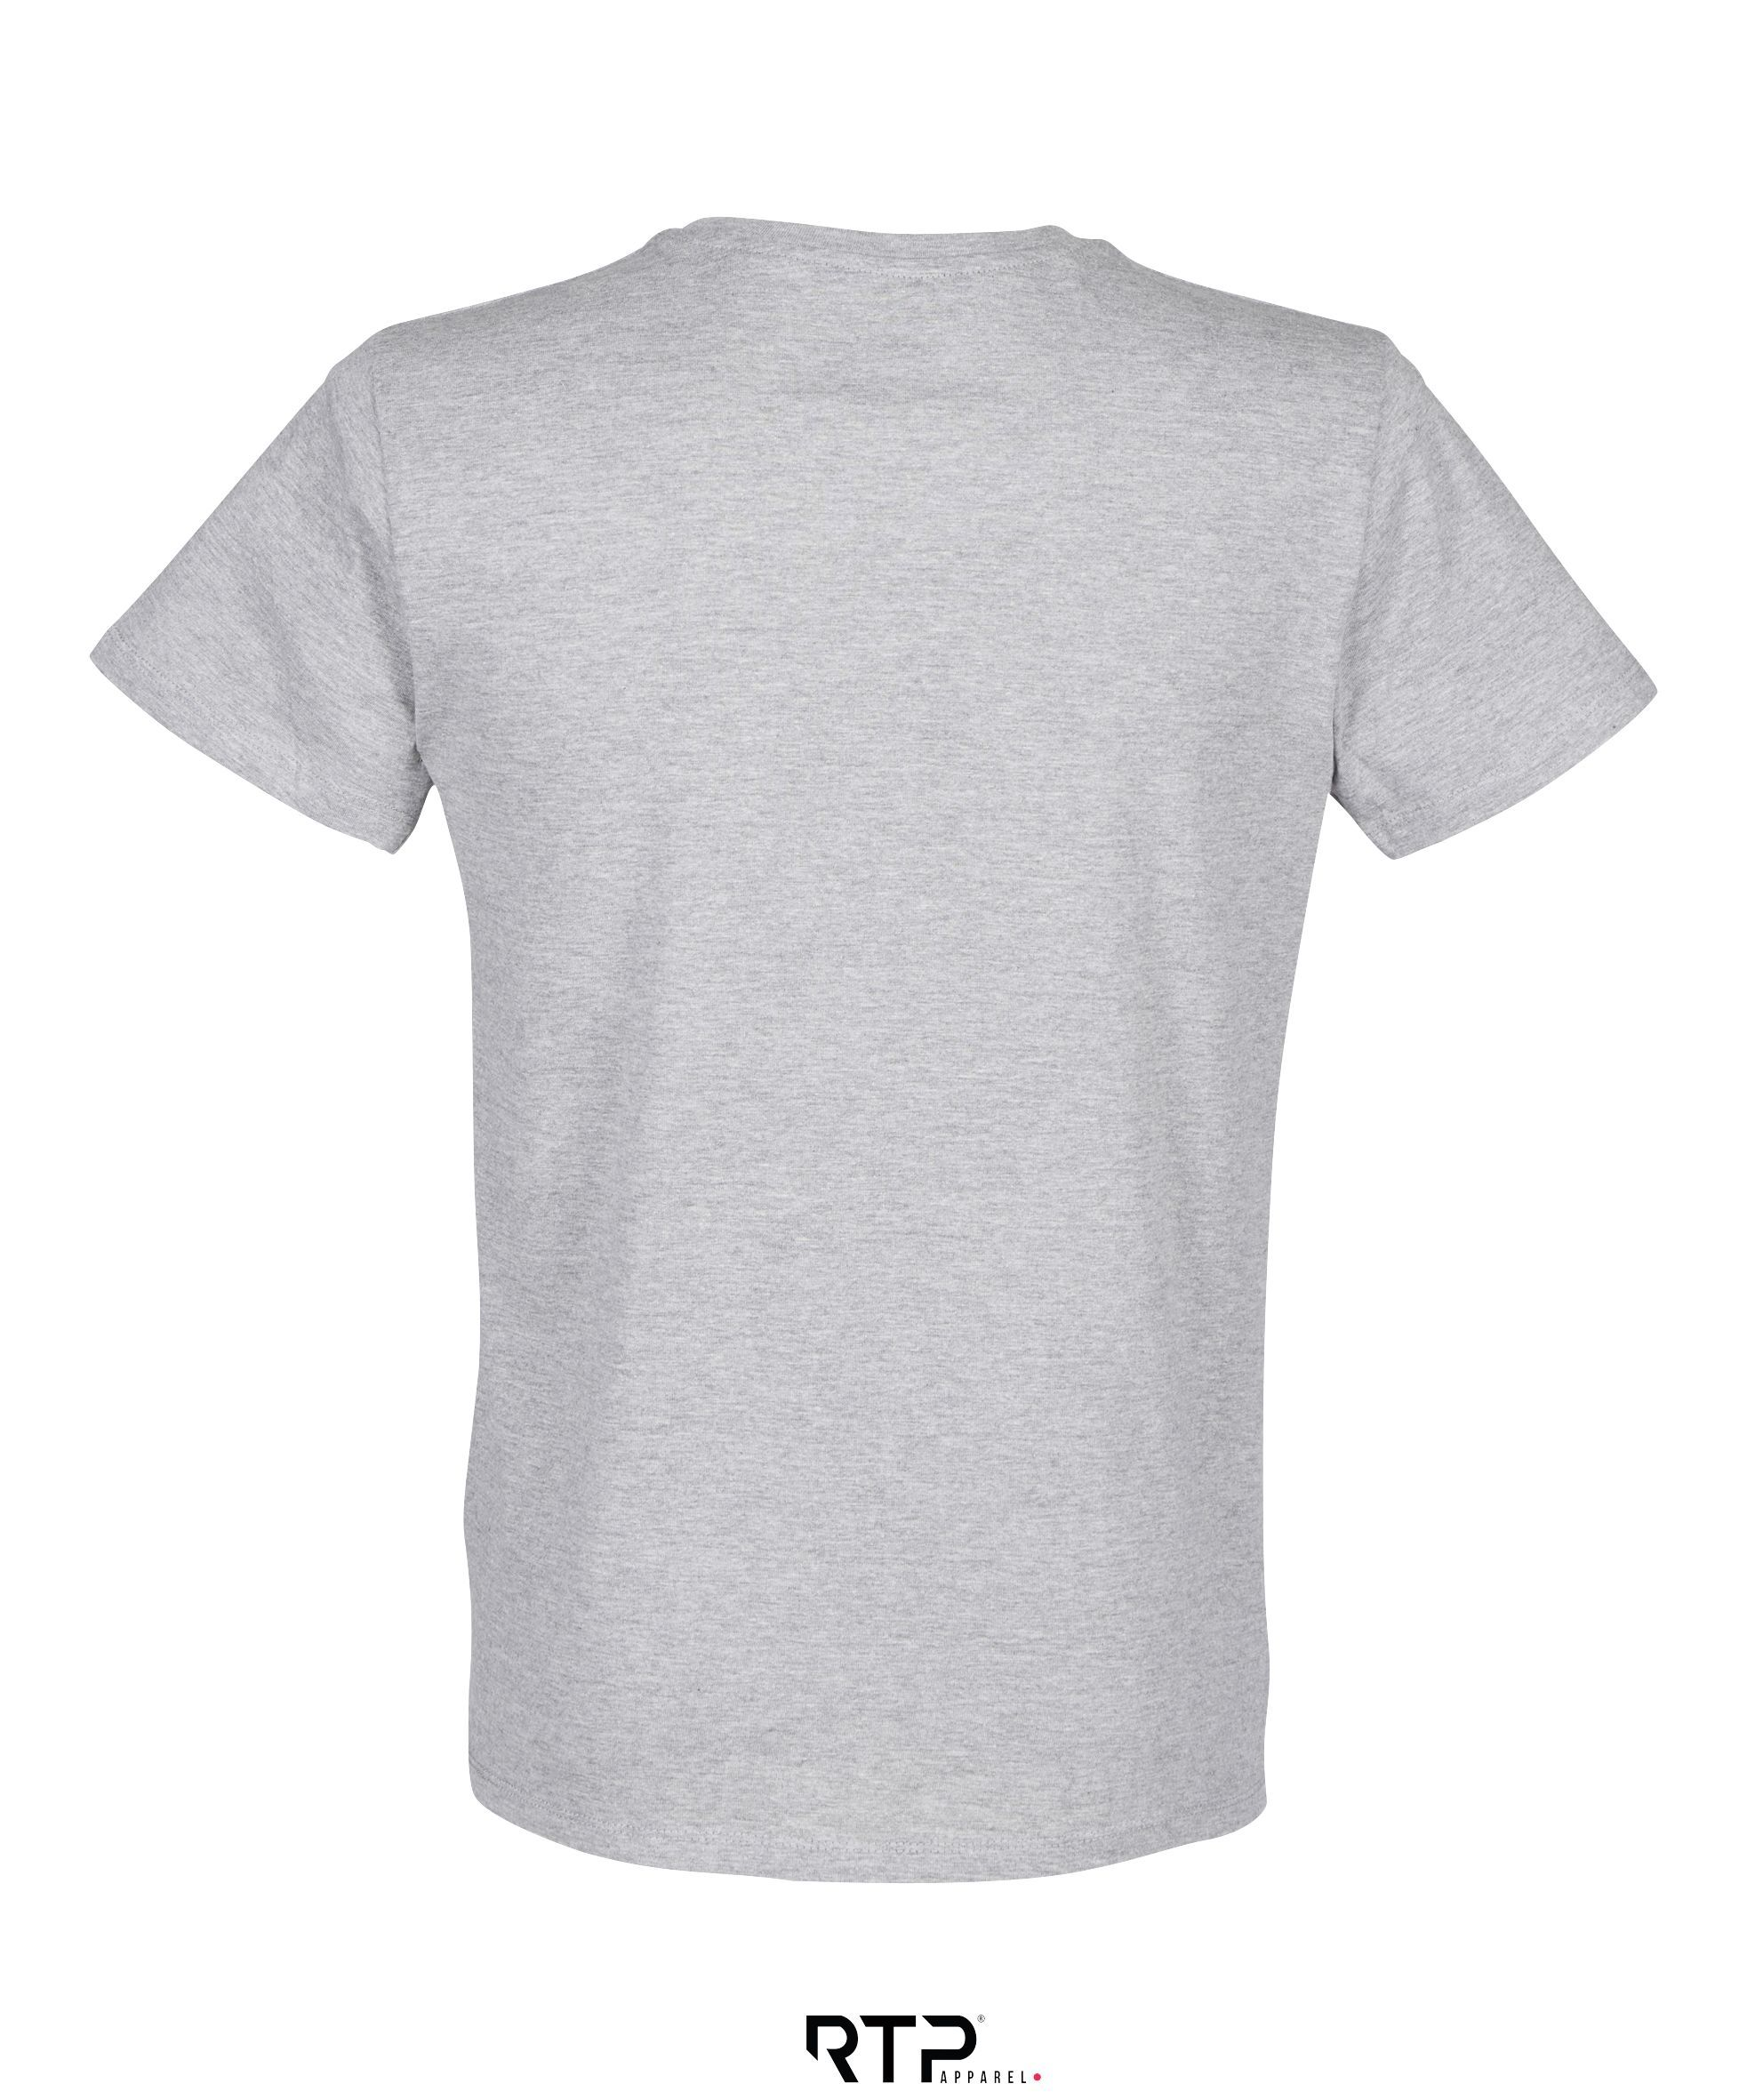 Tee-shirt homme manches courtes - 1-1452-4